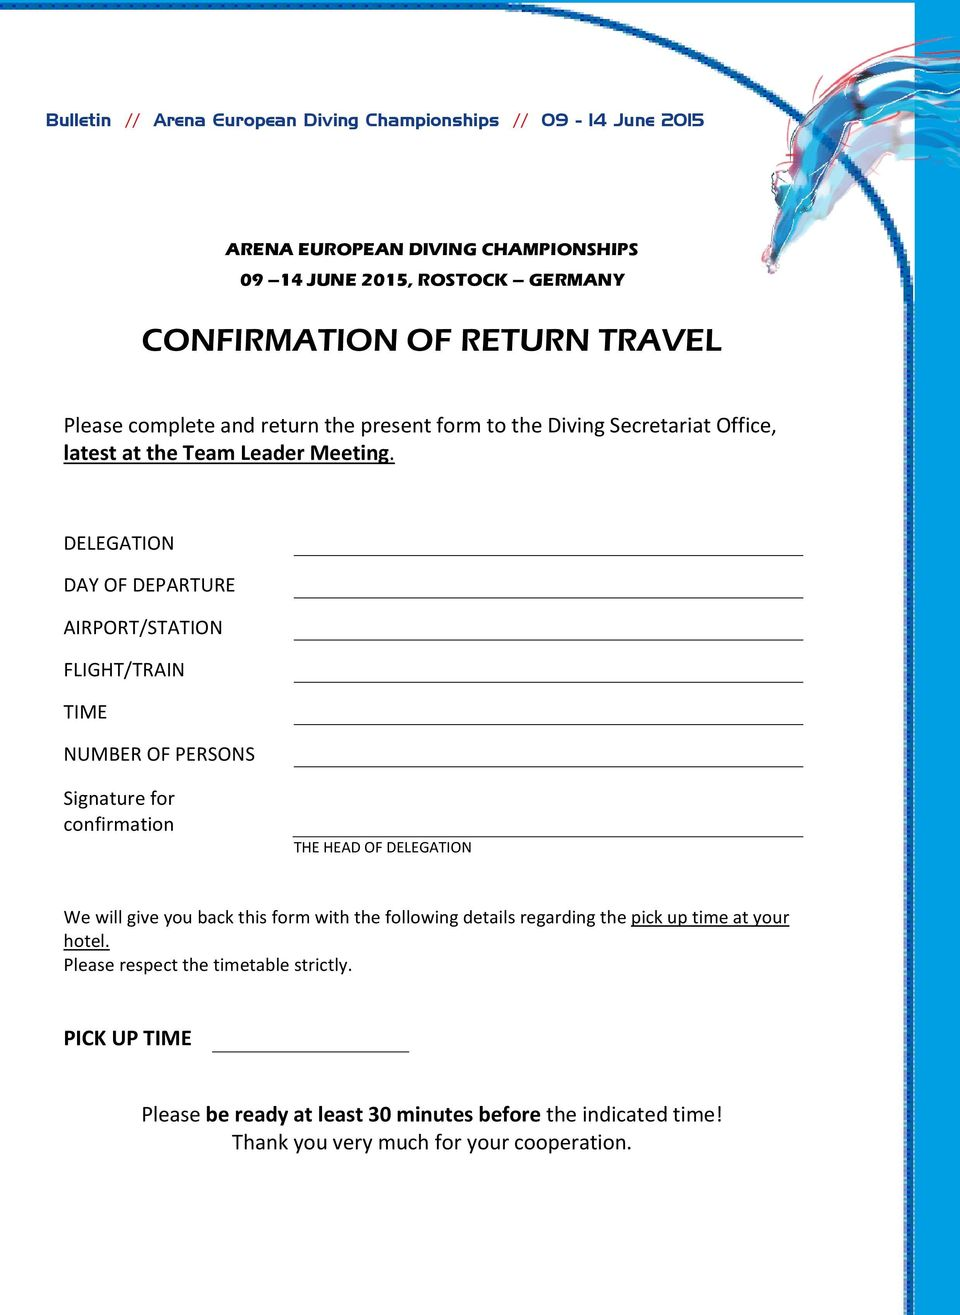 DELEGATION DAY OF DEPARTURE AIRPORT/STATION FLIGHT/TRAIN TIME NUMBER OF PERSONS Signature for confirmation THE HEAD OF DELEGATION We will give you back this form with